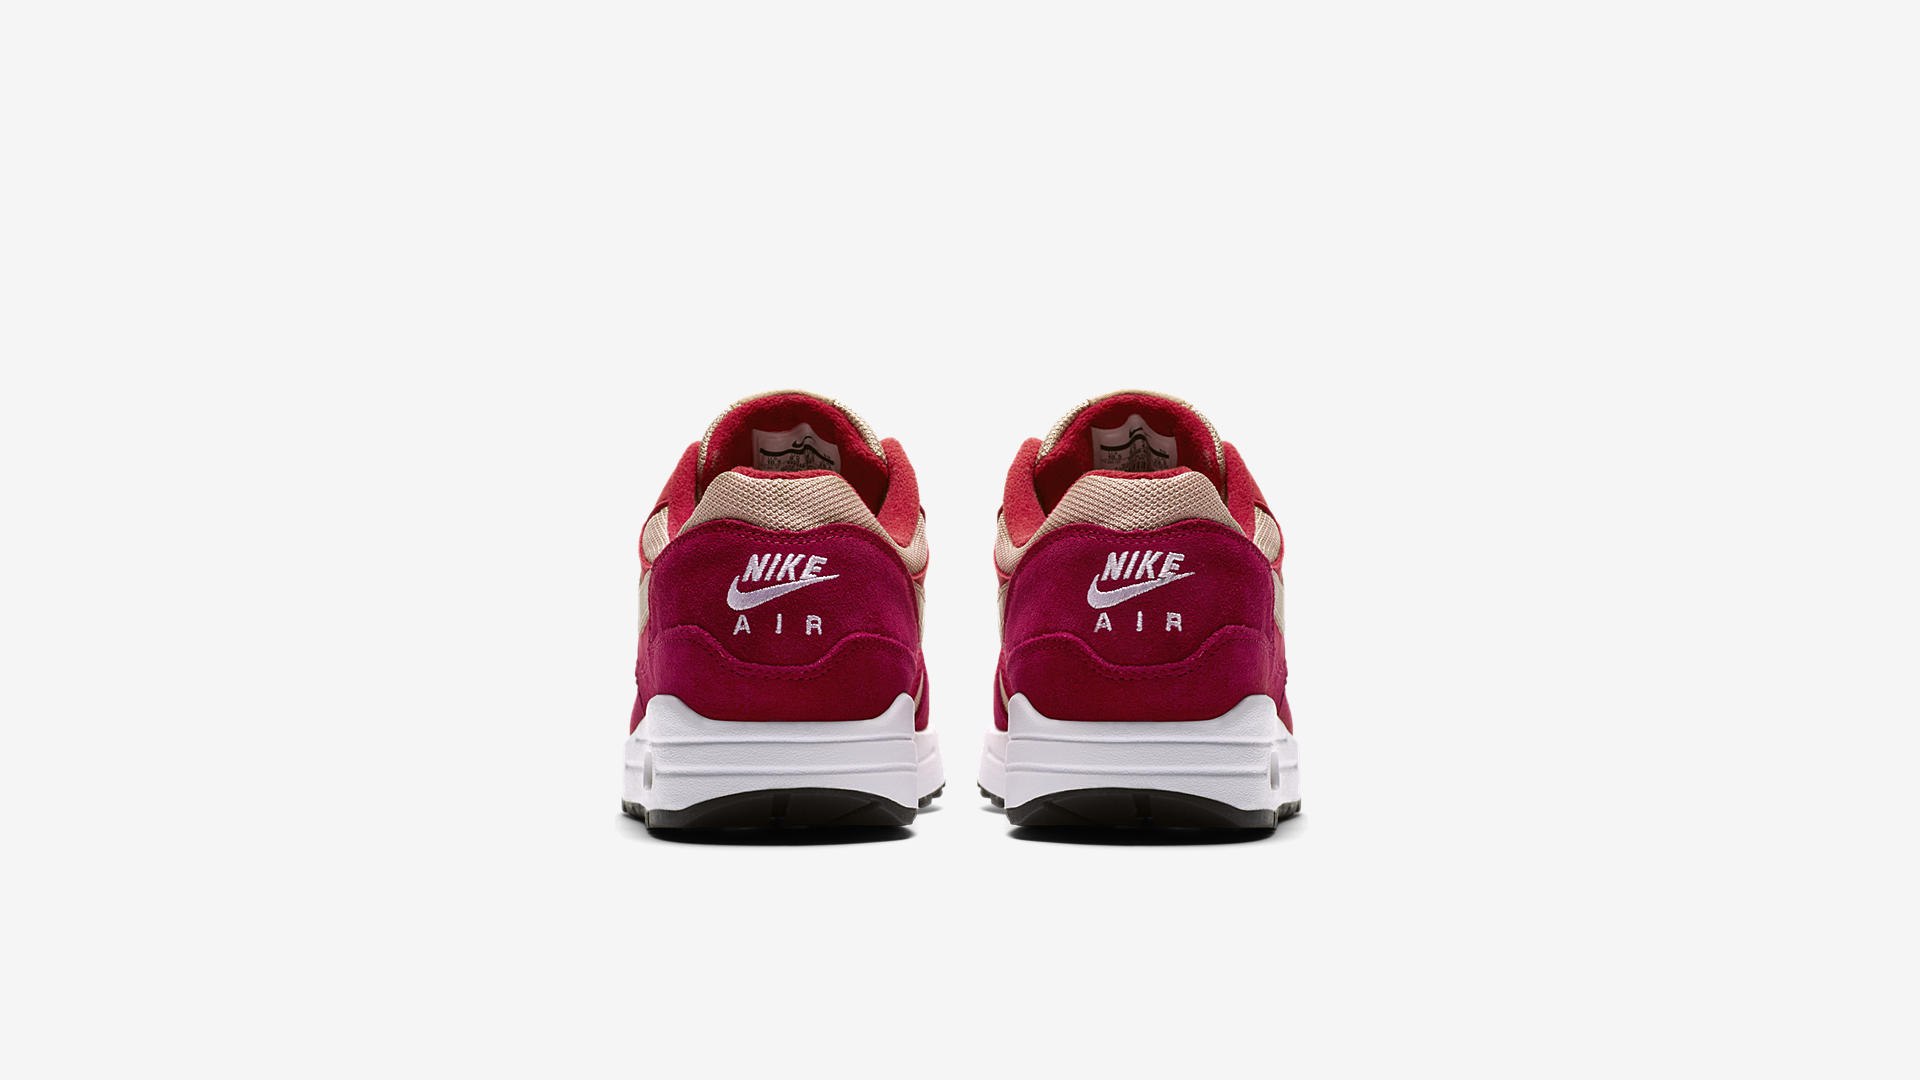 908366 600 Nike Air Max 1 Red Curry 1